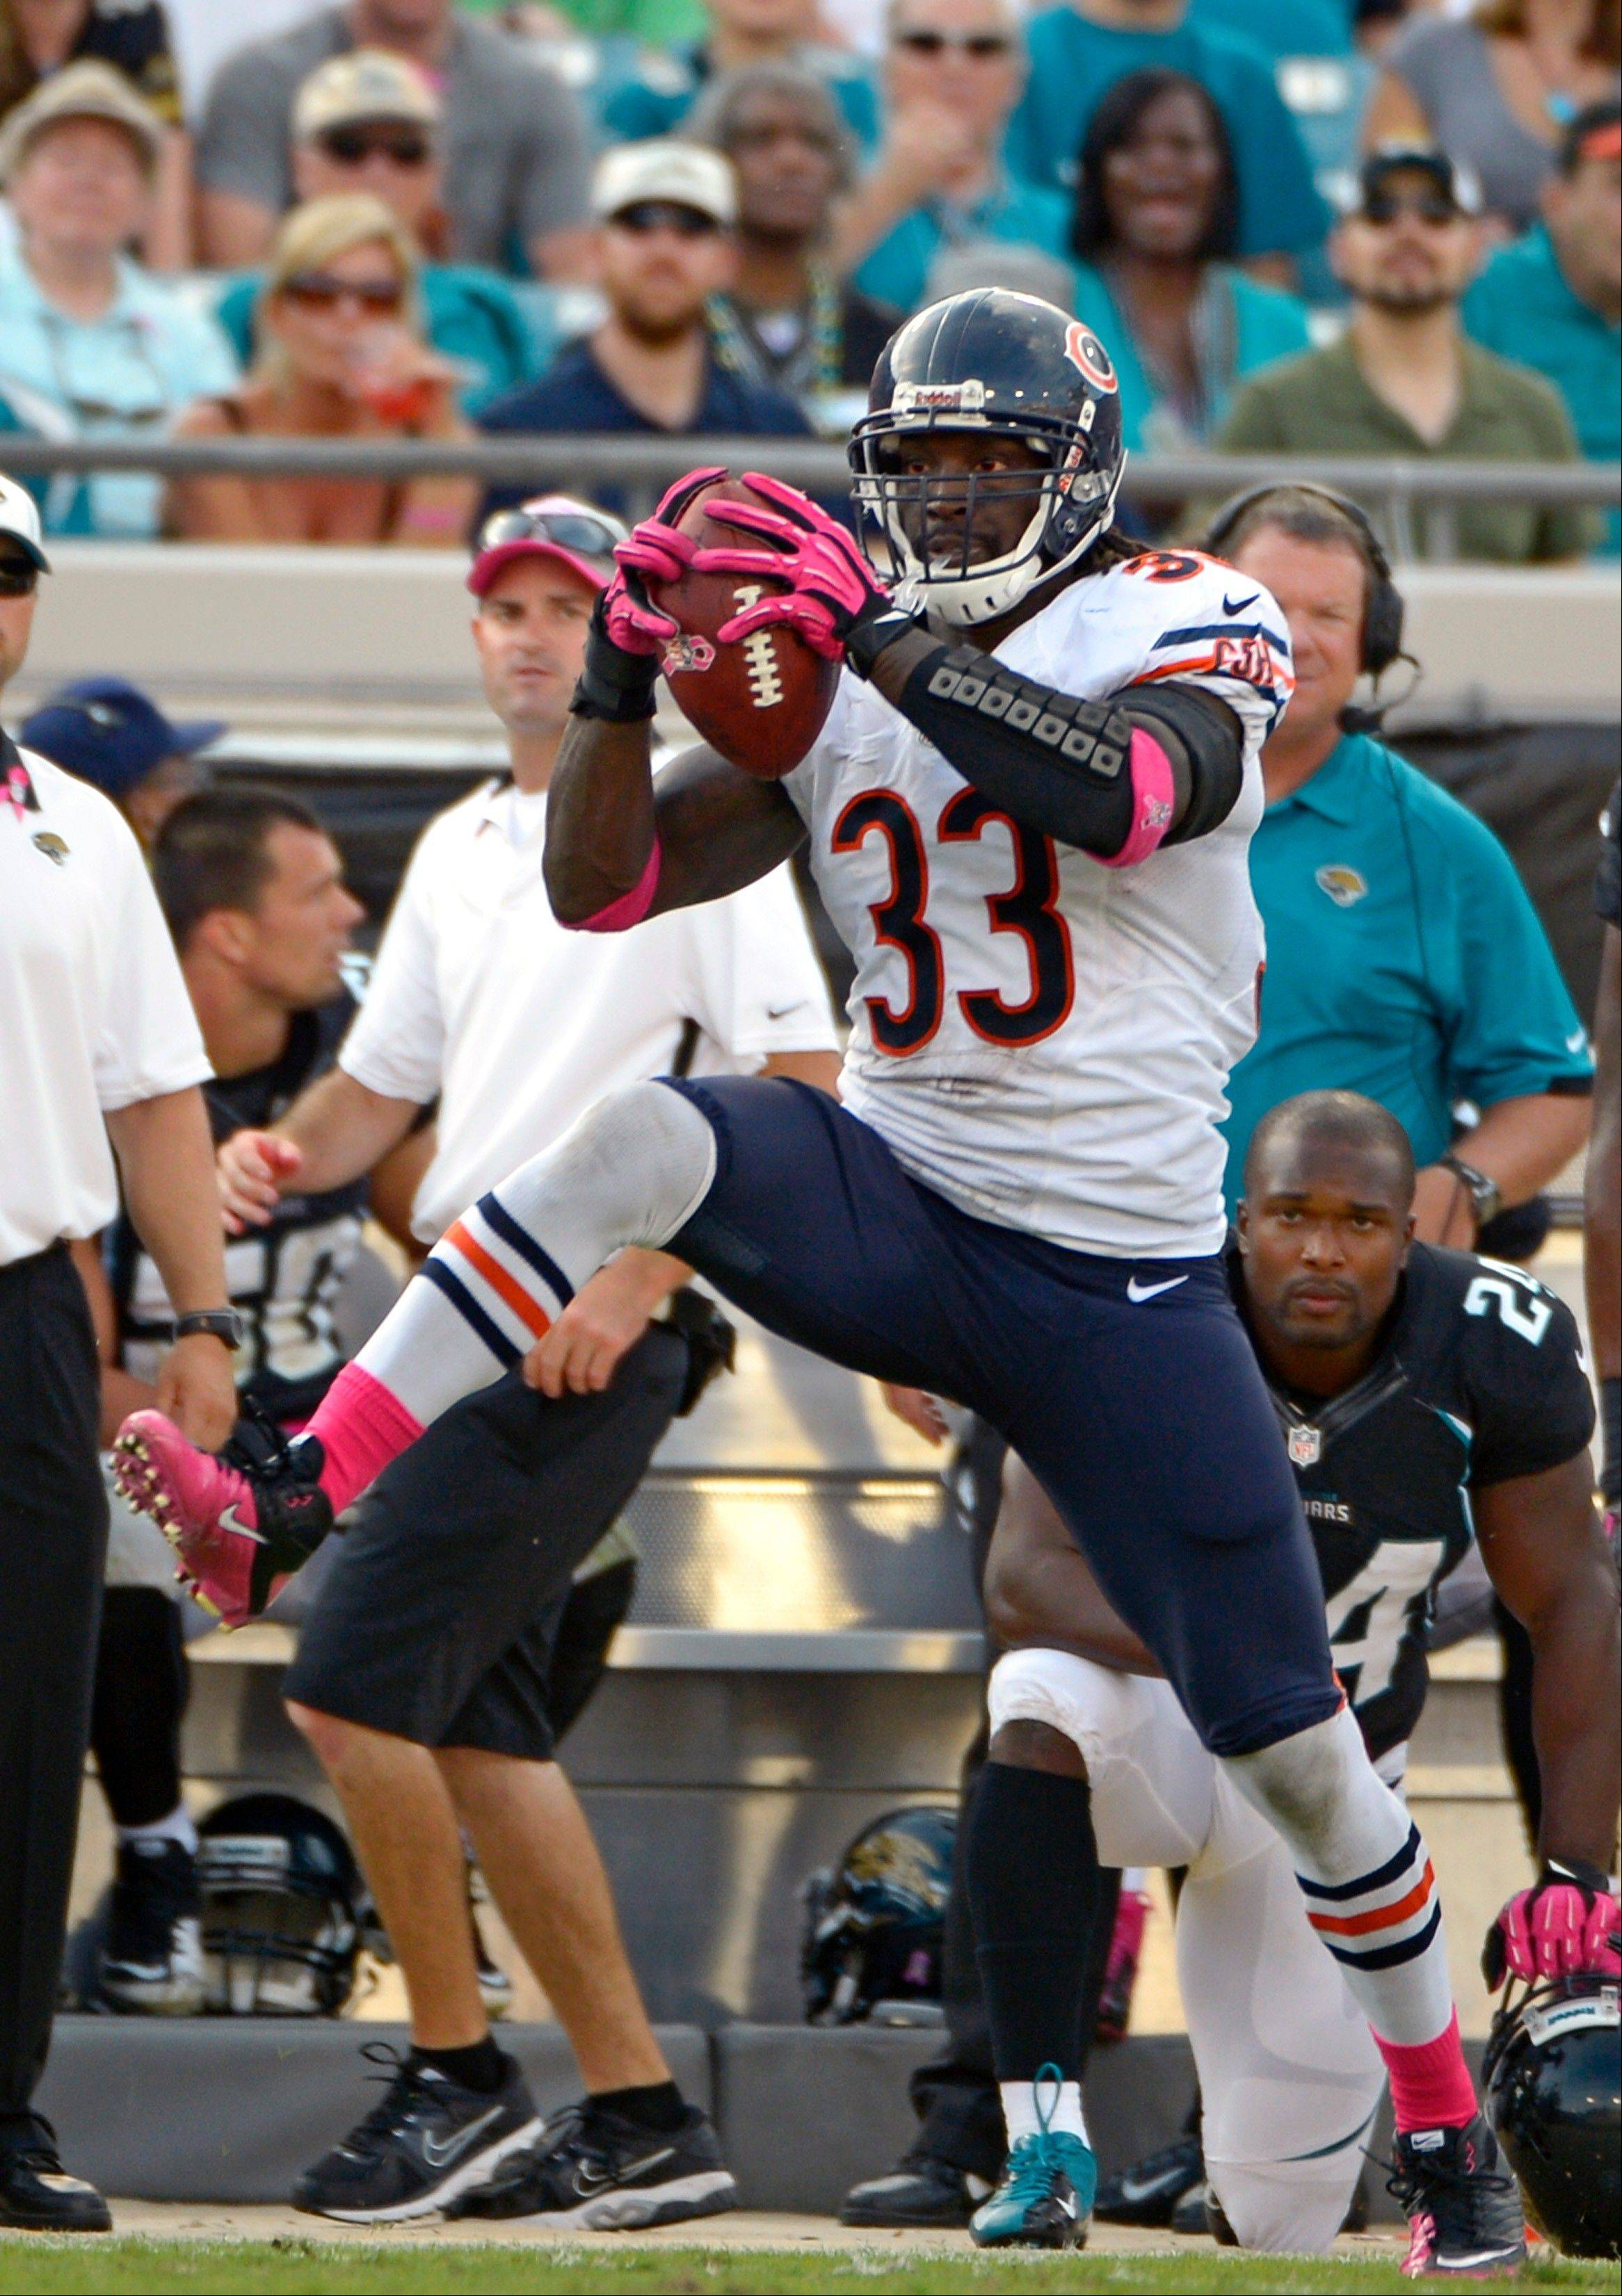 Chicago Bears cornerback Charles Tillman intercepts a Jacksonville Jaguars pass before running it back for a 36-yard touchdown during the second half, Sunday, in Jacksonville, Fla.